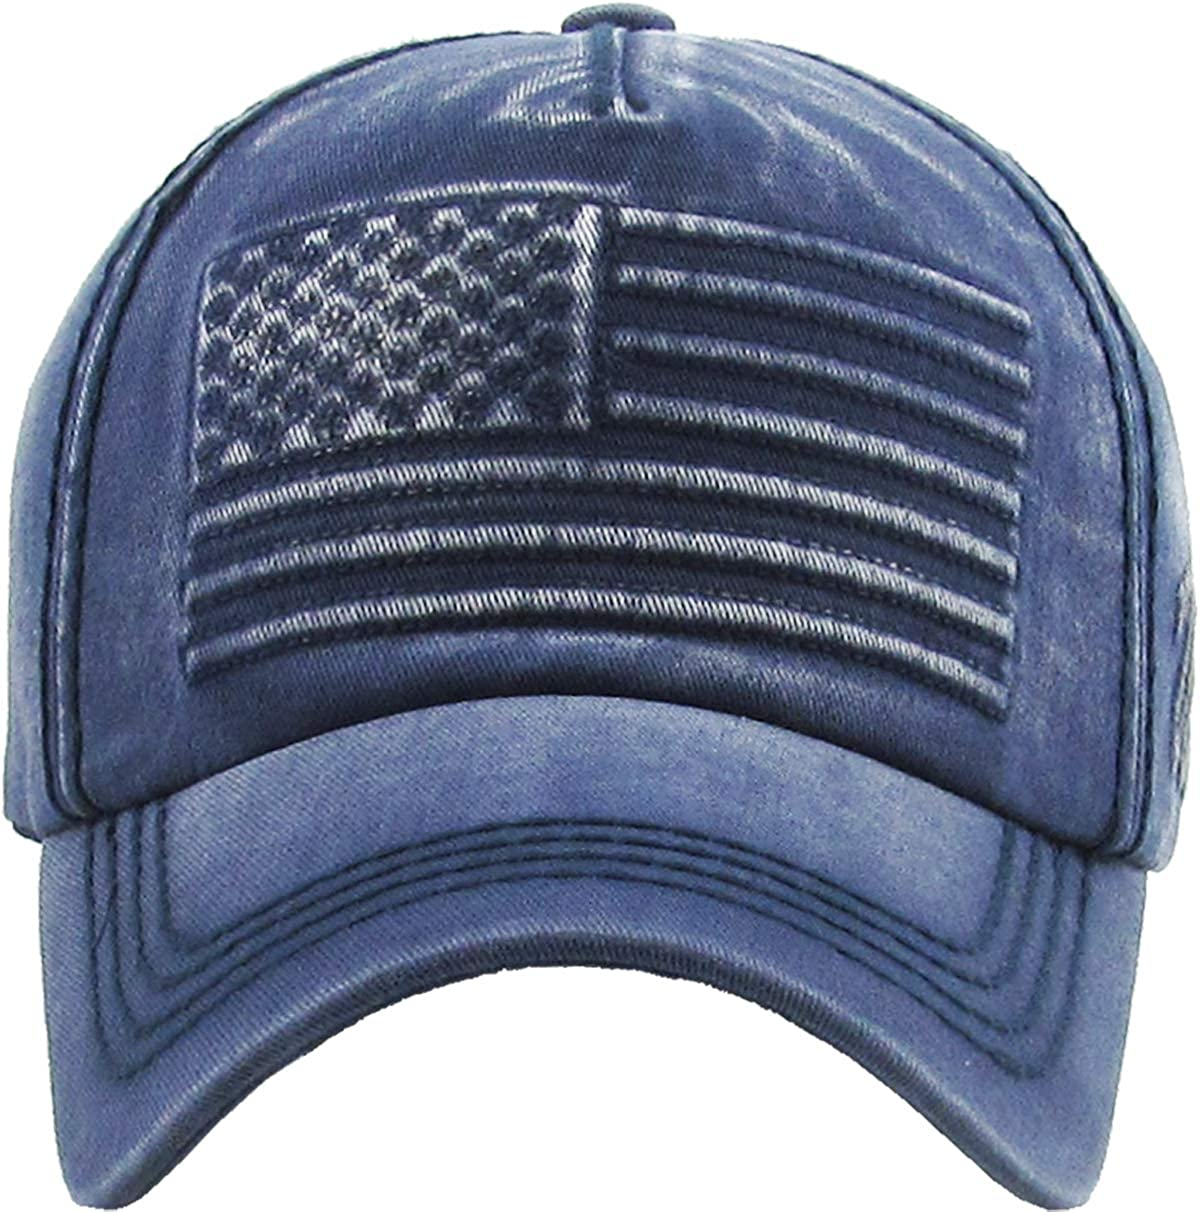 5737a26ccd4 KBVT-1029 BLK America USA Vintage Distressed Dad Hat Baseball Cap Adjustable   Amazon.ca  Sports   Outdoors